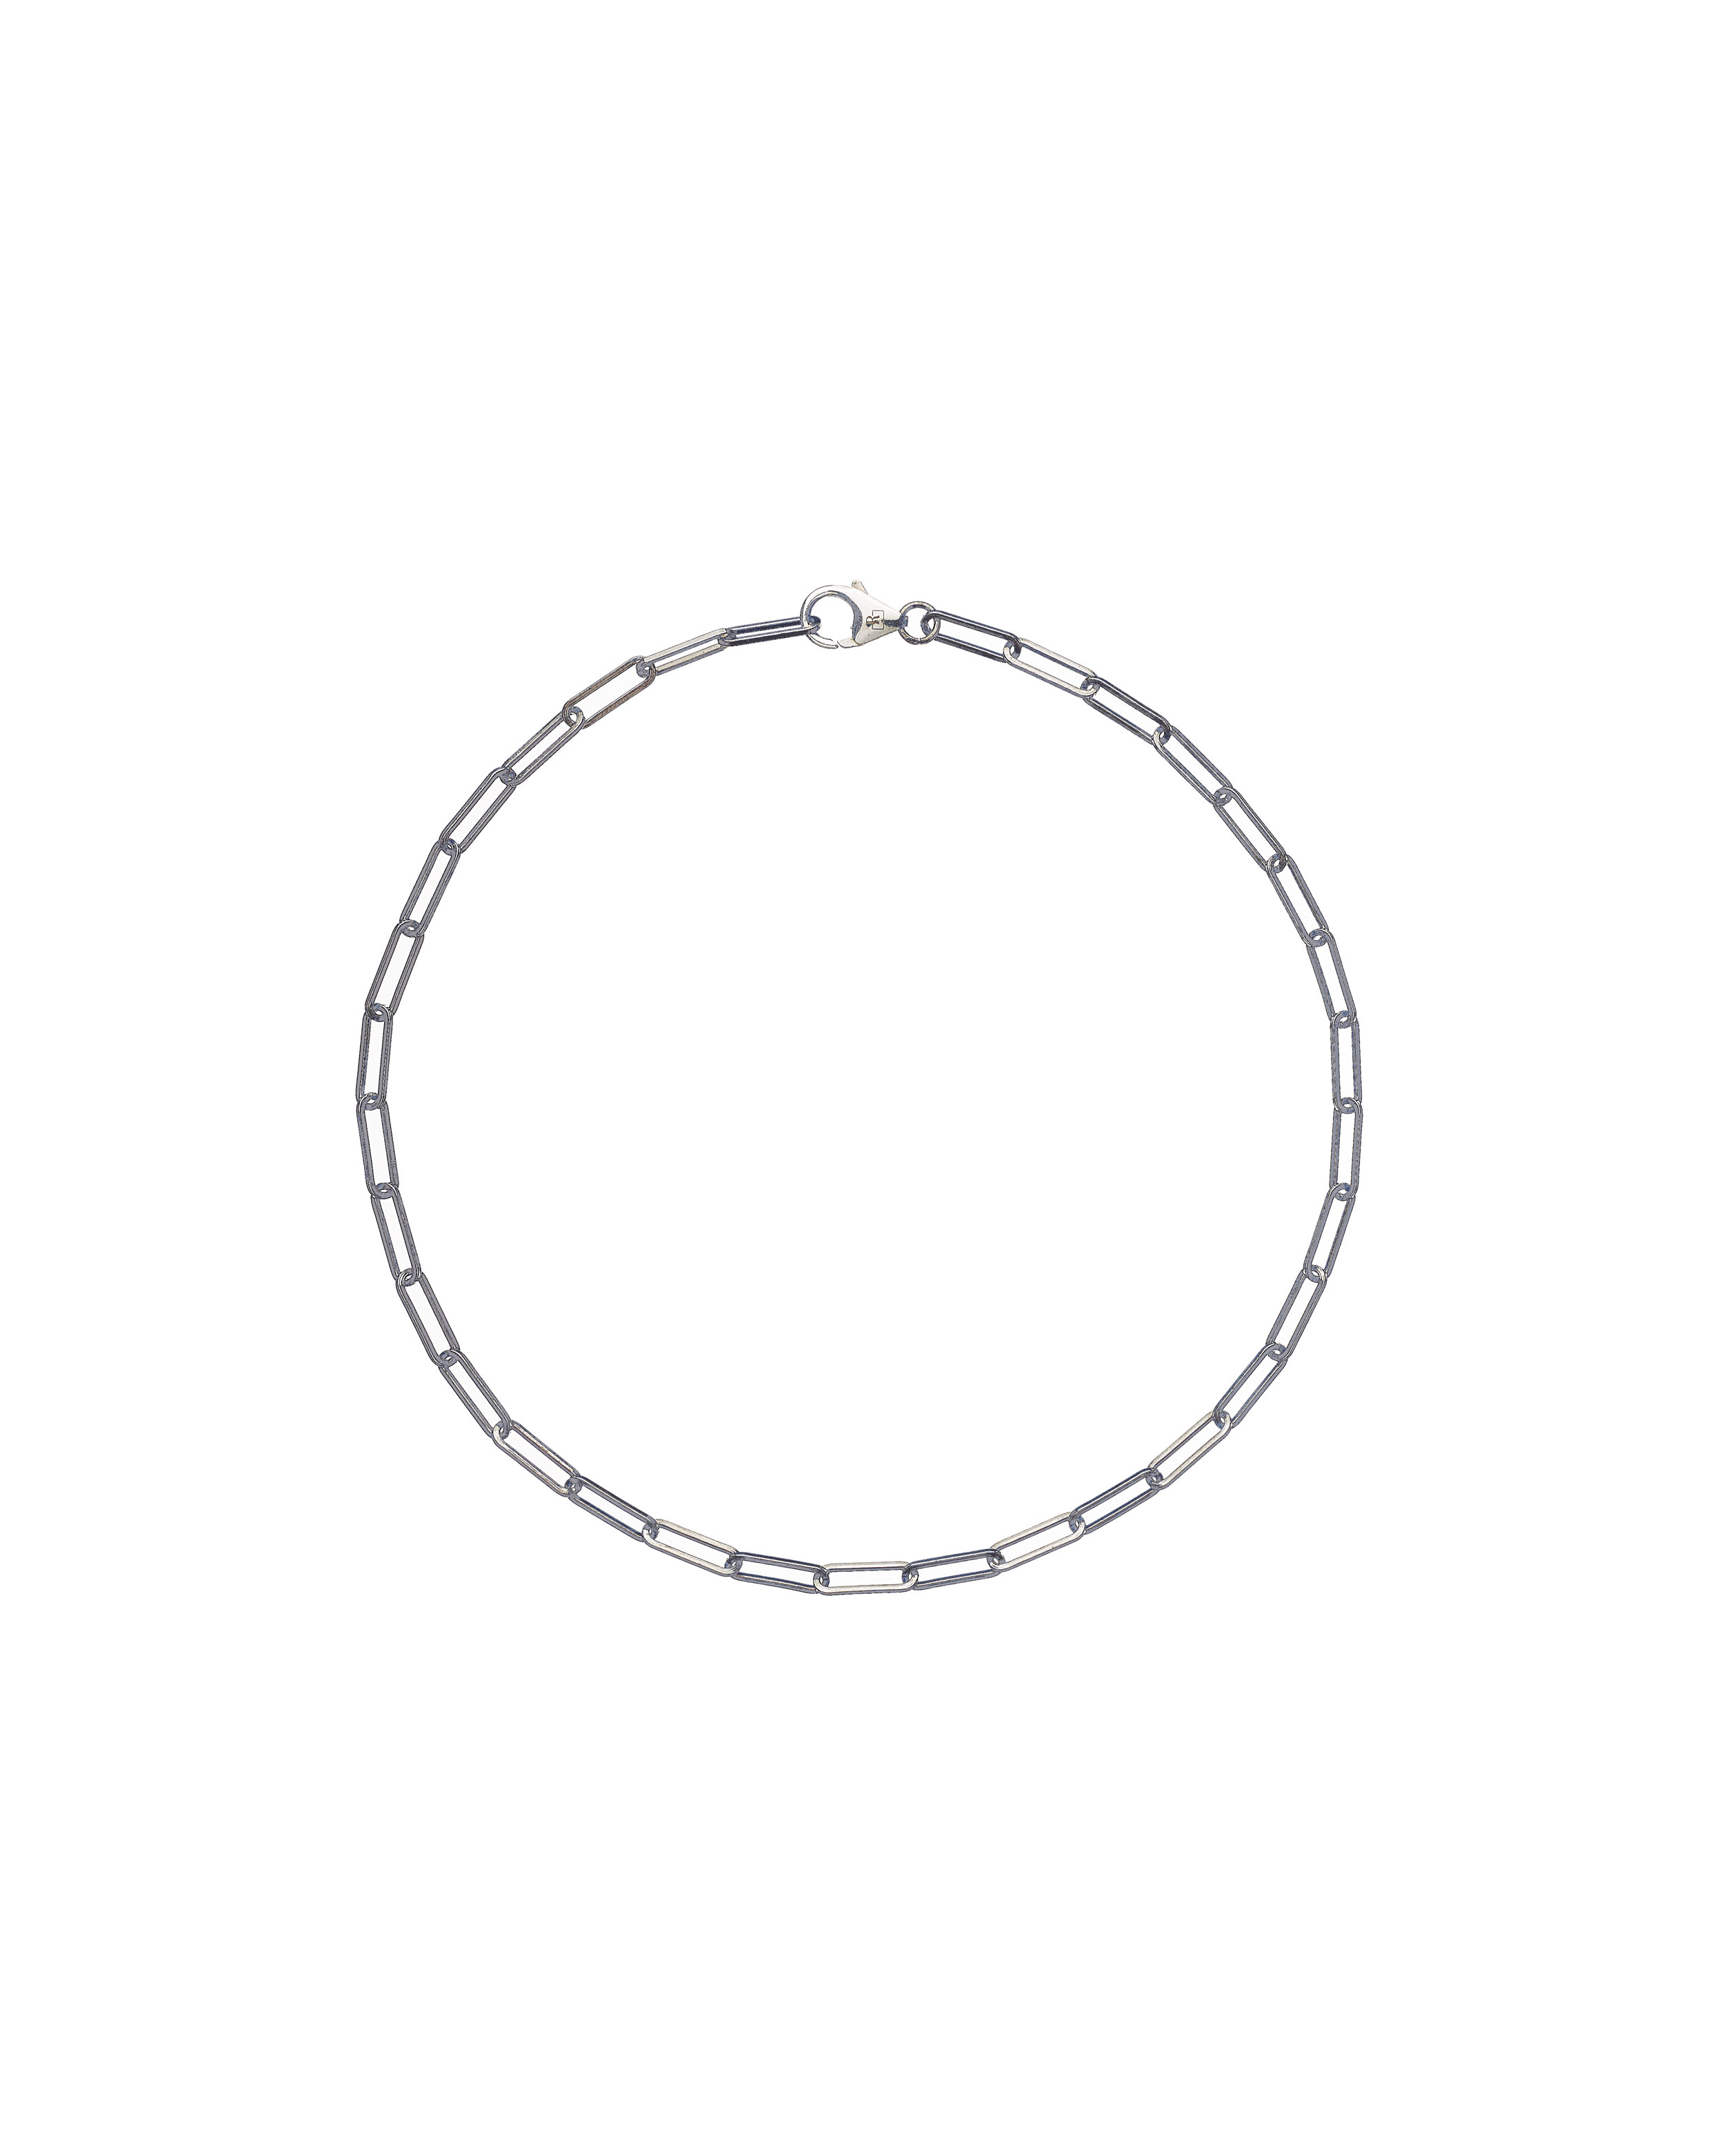 solid 925 Sterling silver chain luxury bracelet from Regalia Logo collection